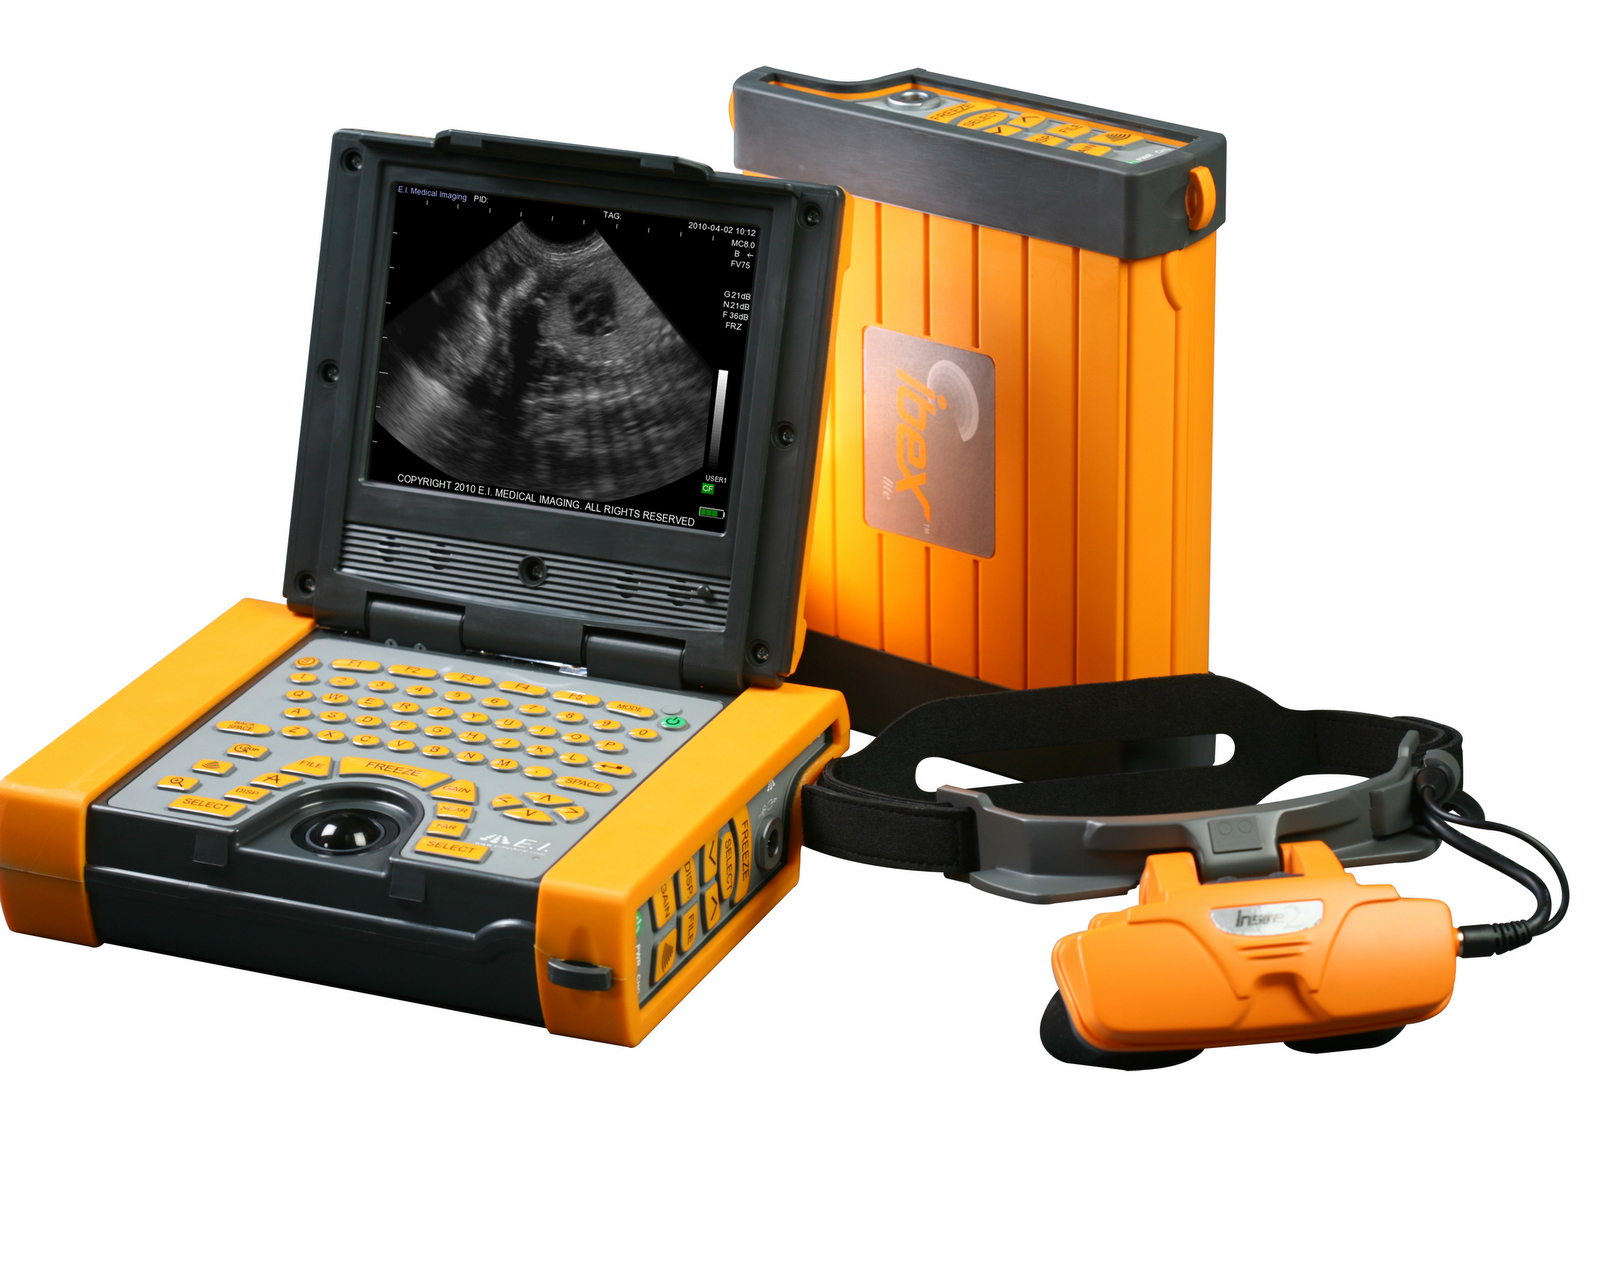 ibex portable ultrasound, bovine ultrasound, animal ultrasound, veterinary ultrasound